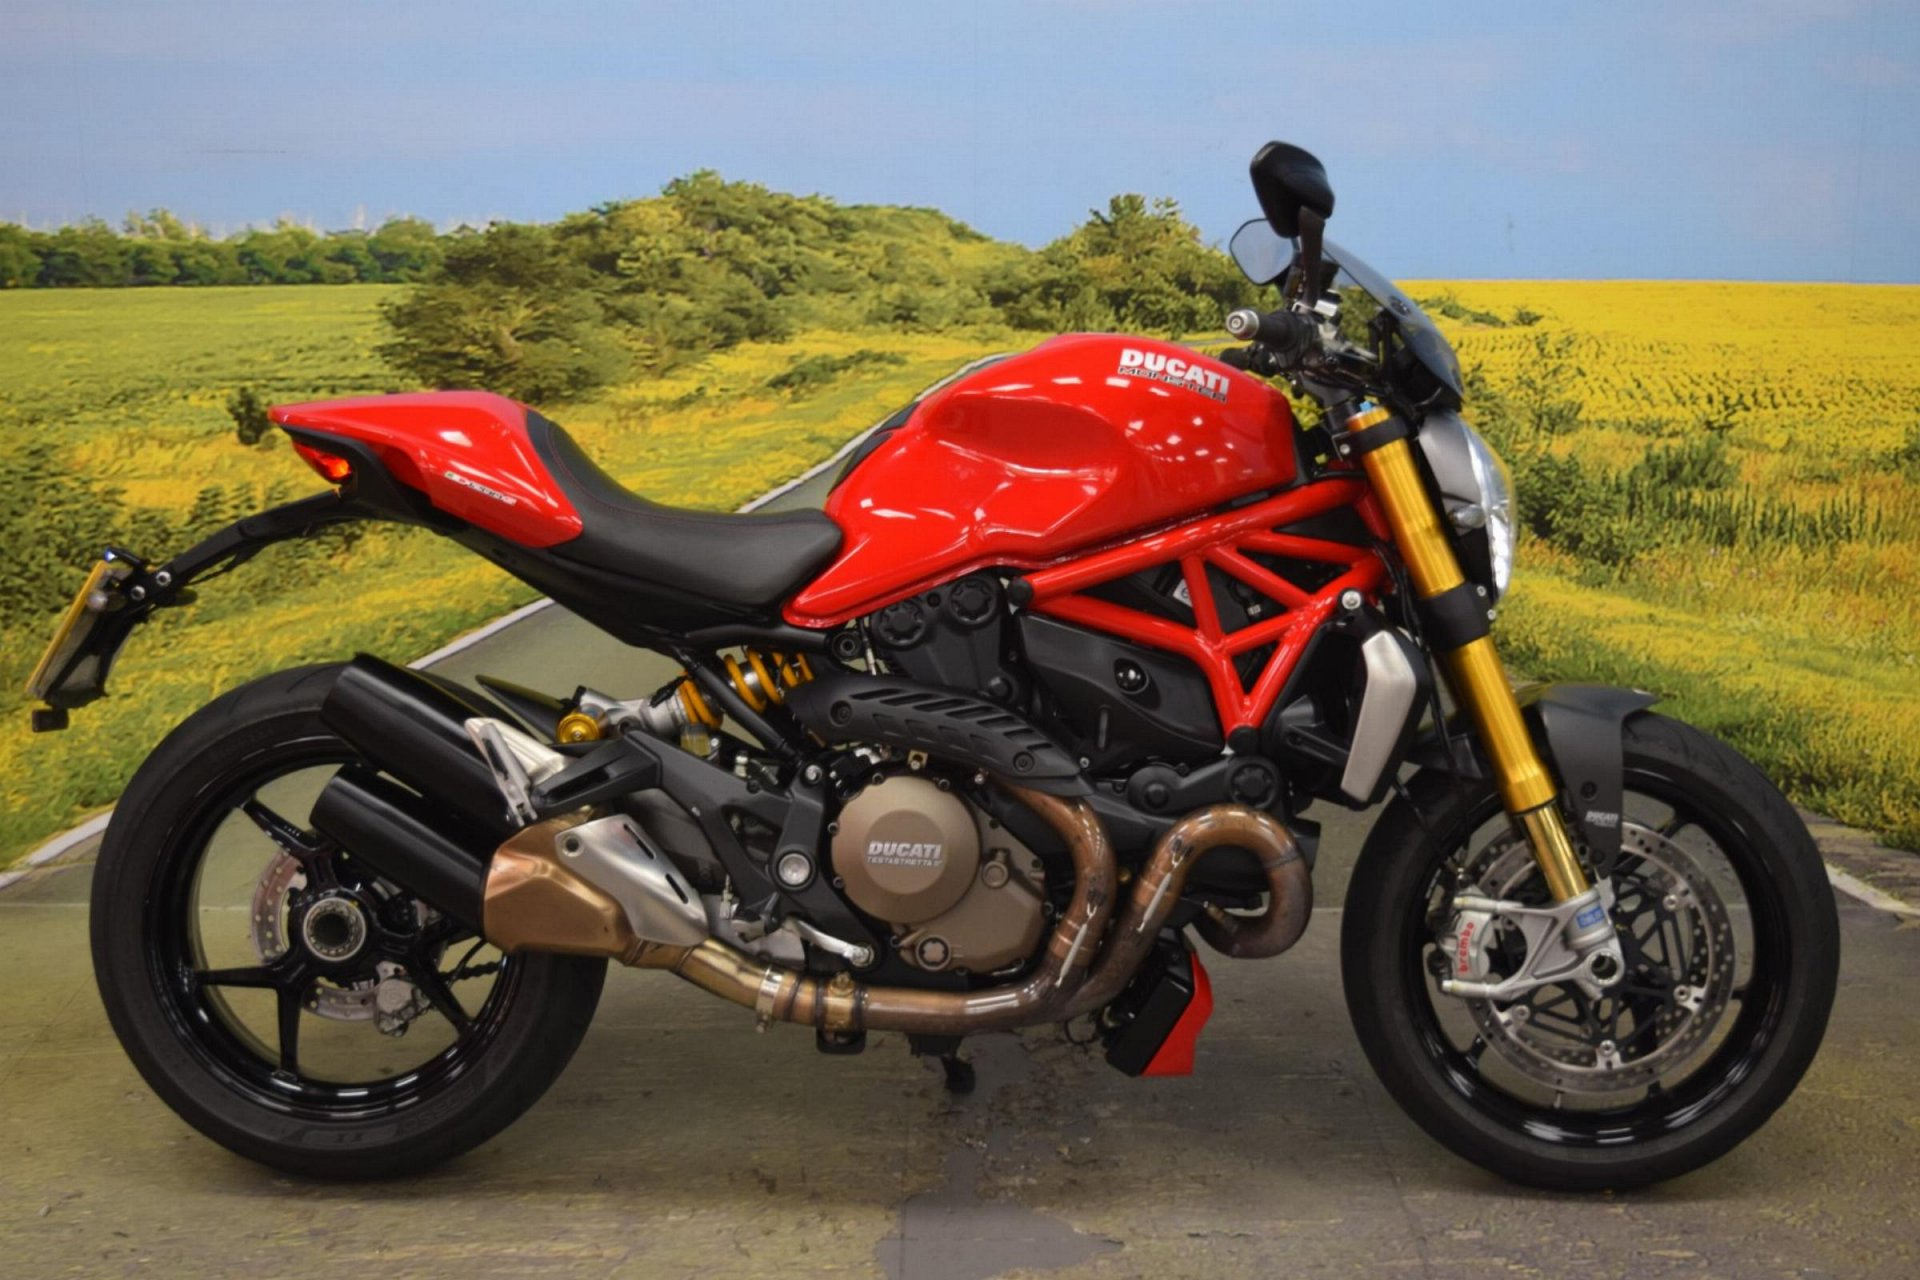 2014 Ducati M1200 S for sale in Staffordshire